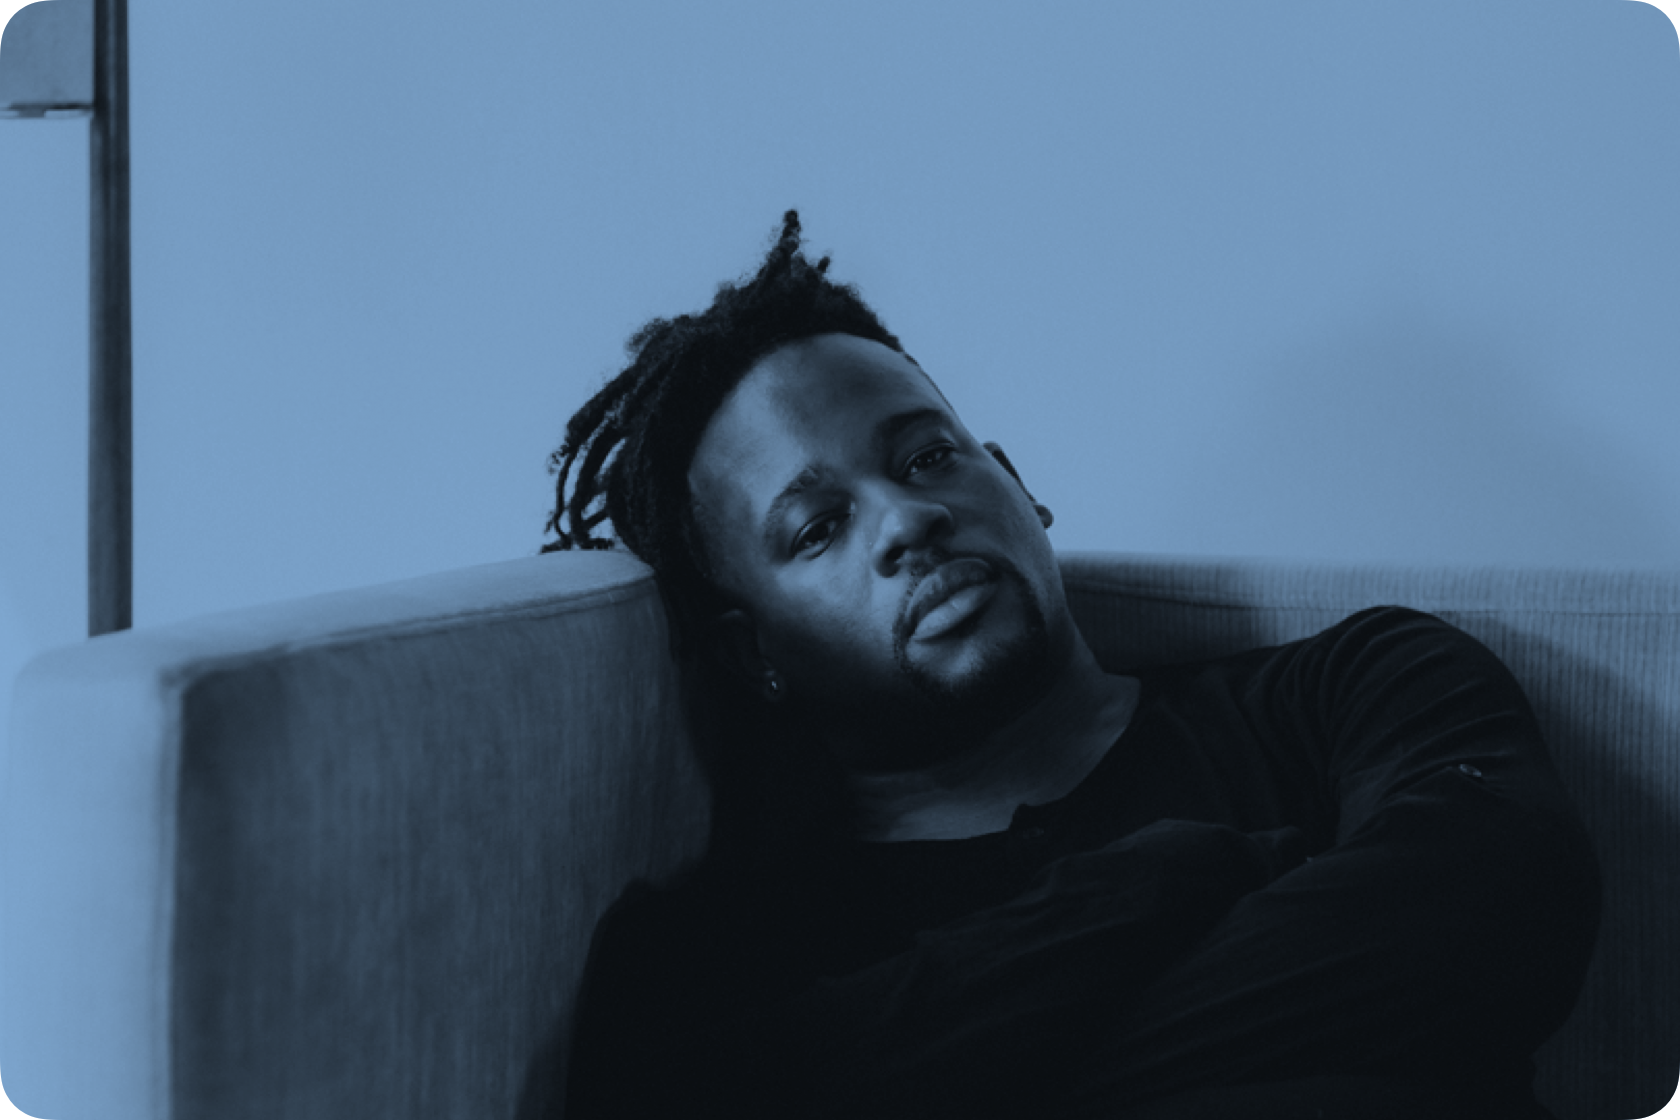 Open Mike Eagle sitting down